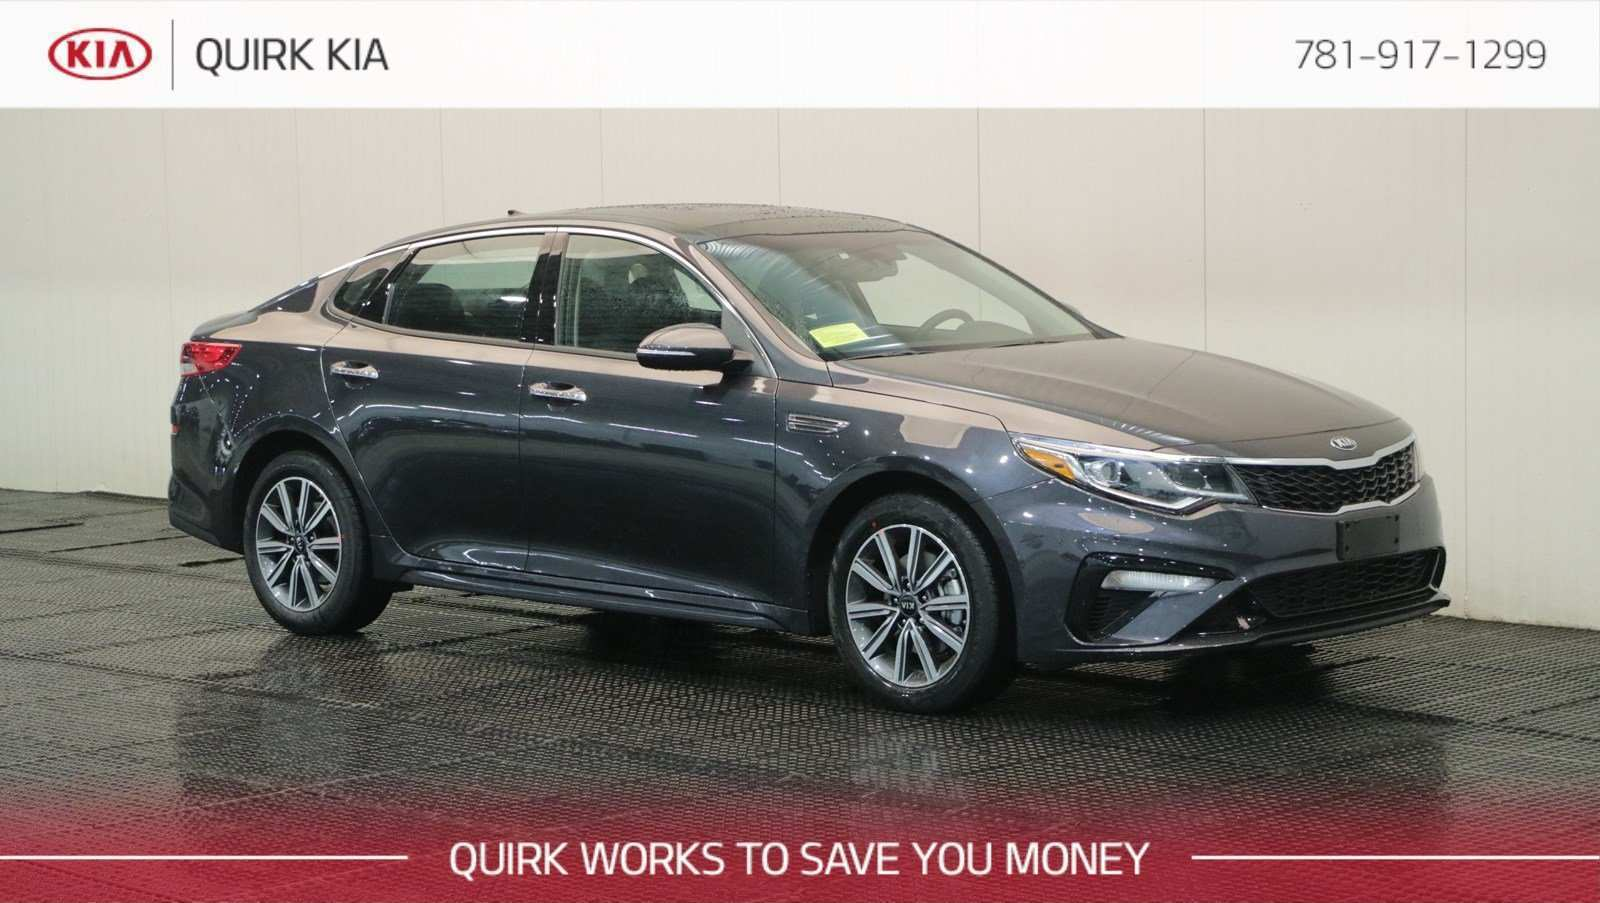 69 The Best 2019 Kia Optima Images